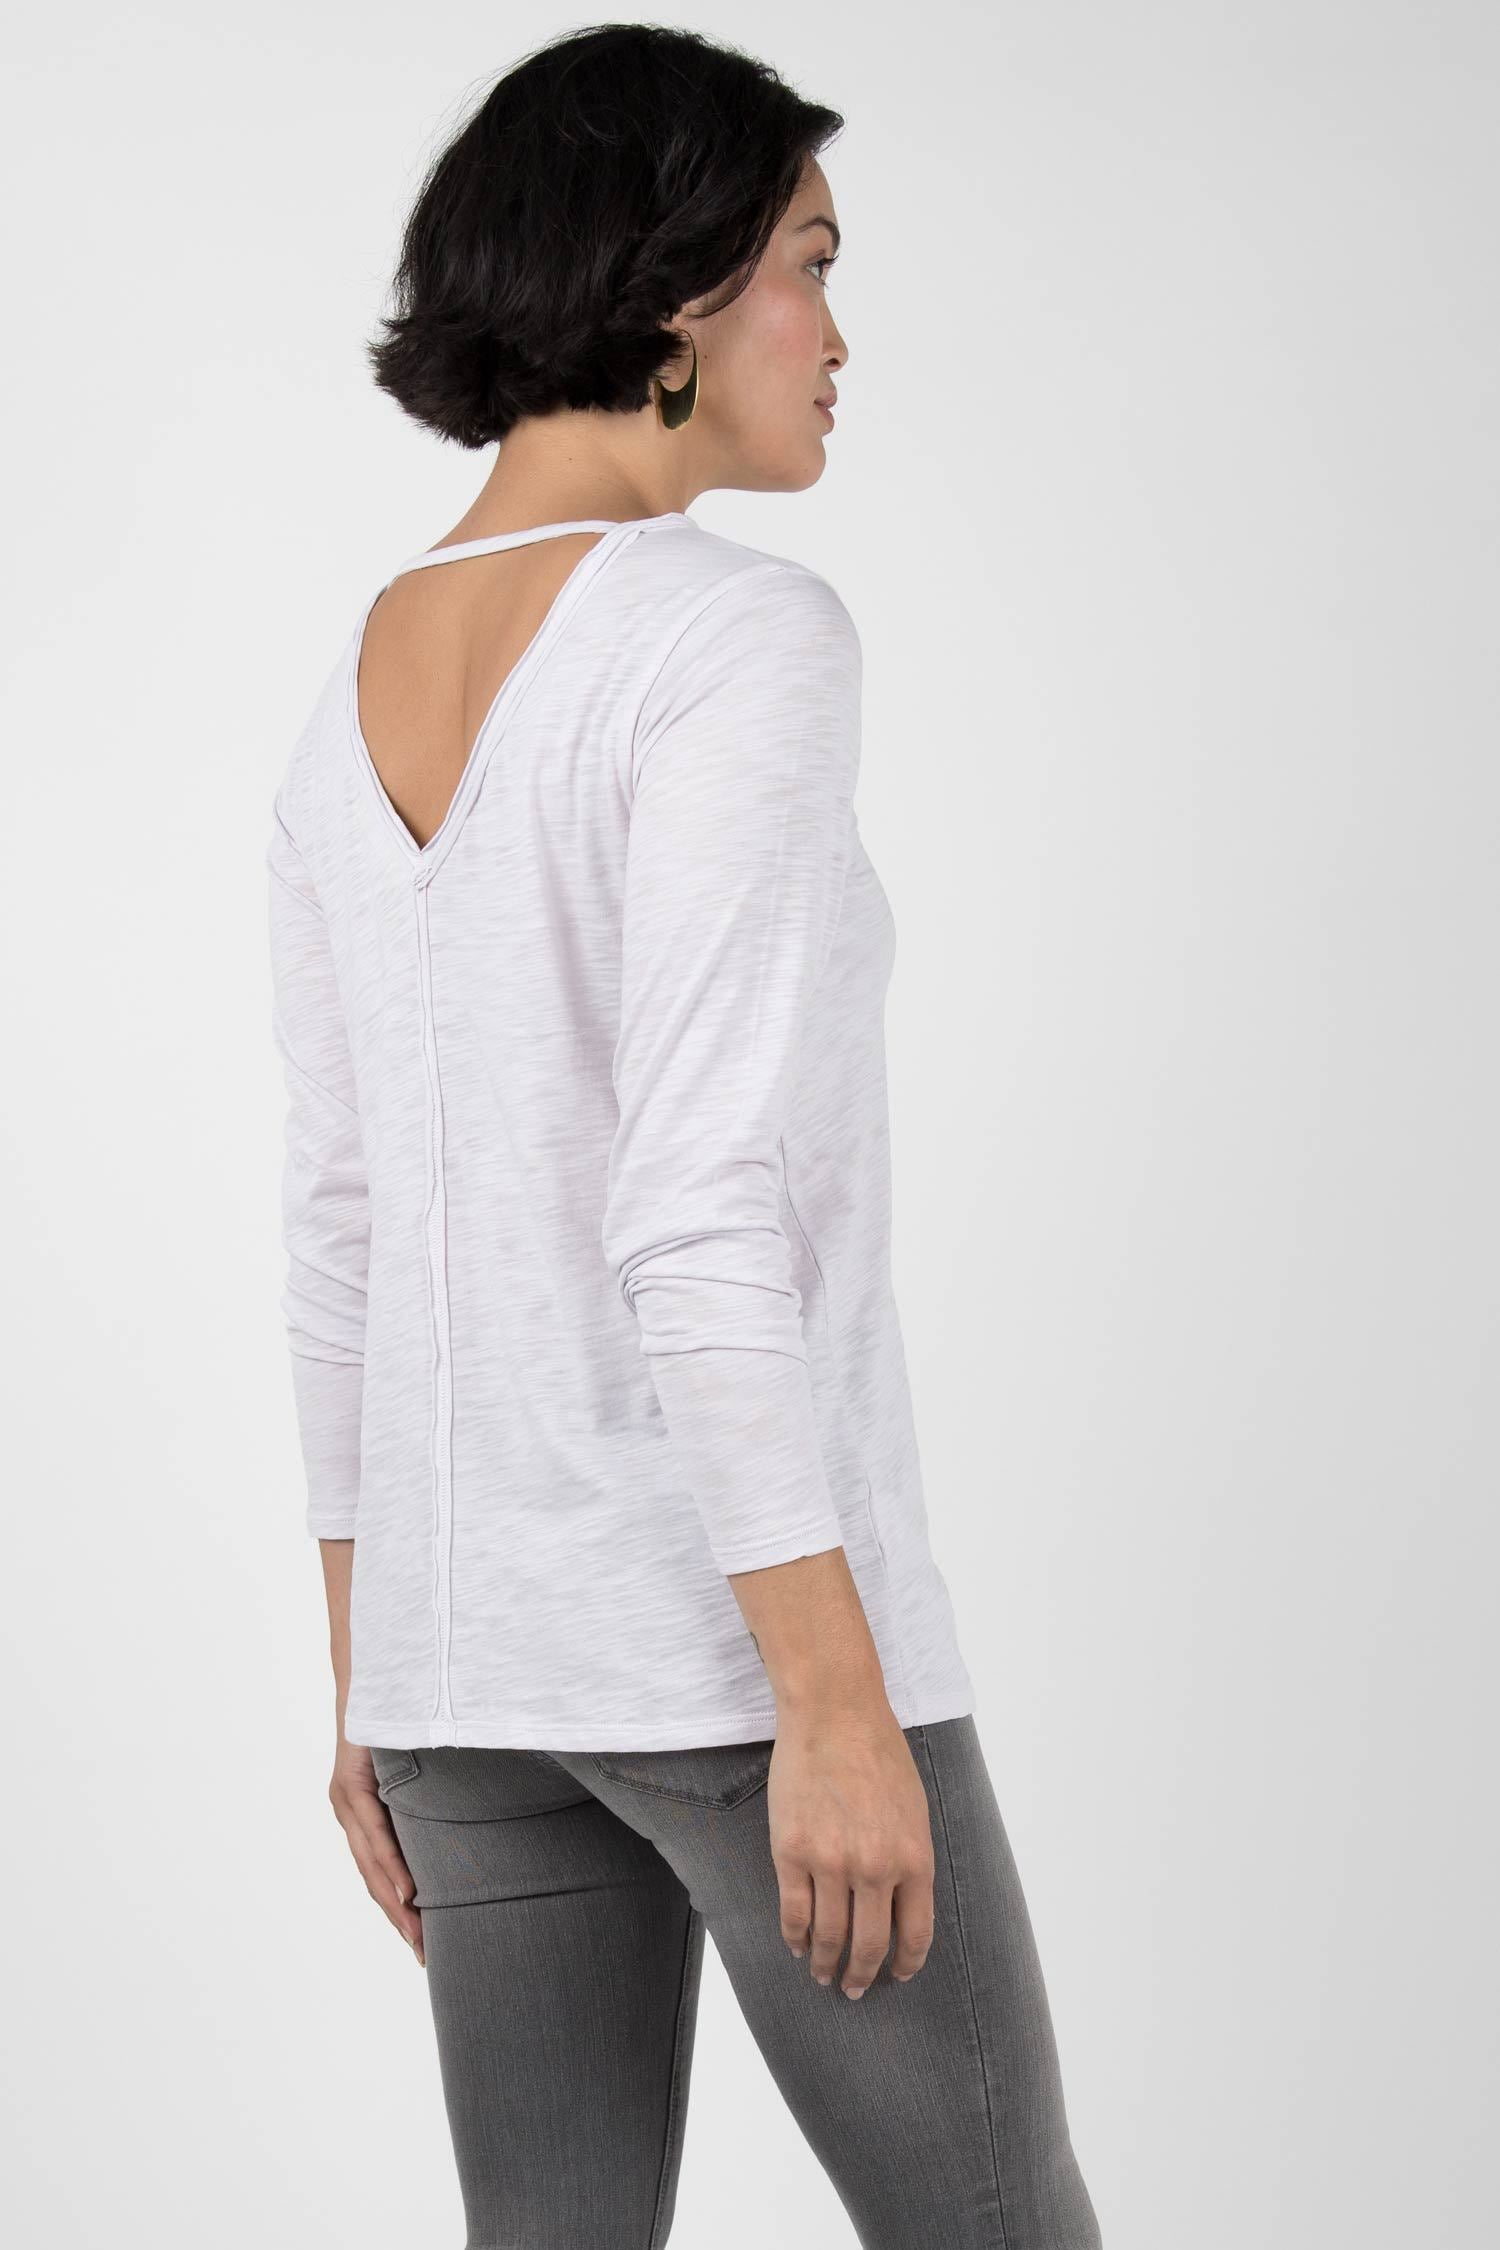 Womens Organic Cotton Shirt | Reversible V Back Top